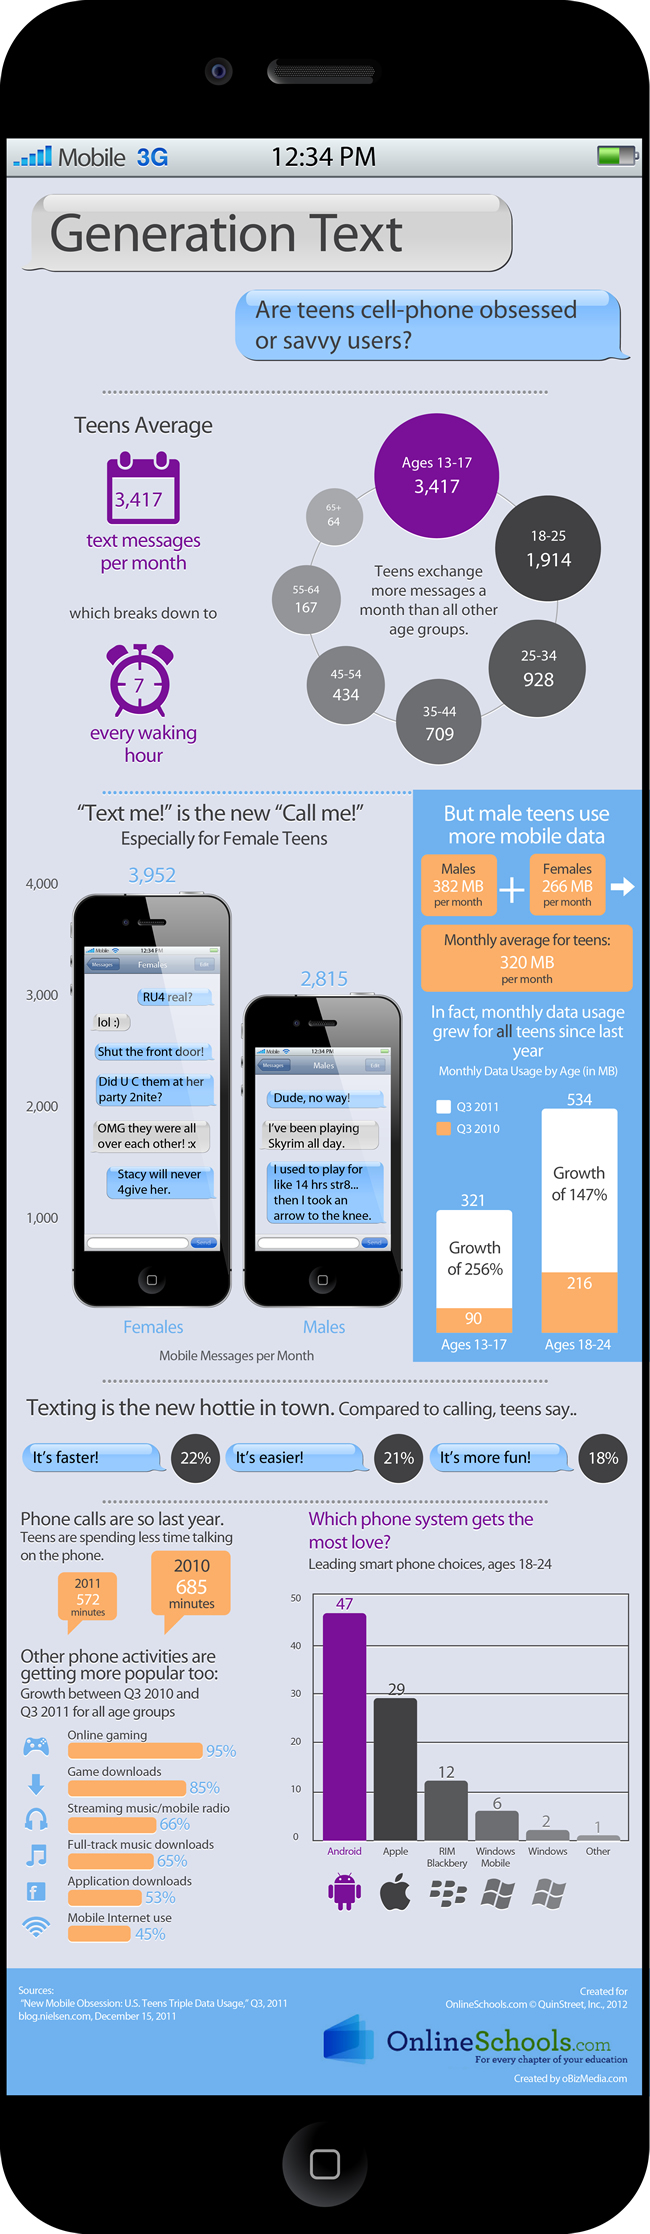 Online Mobile Teens Dont 118